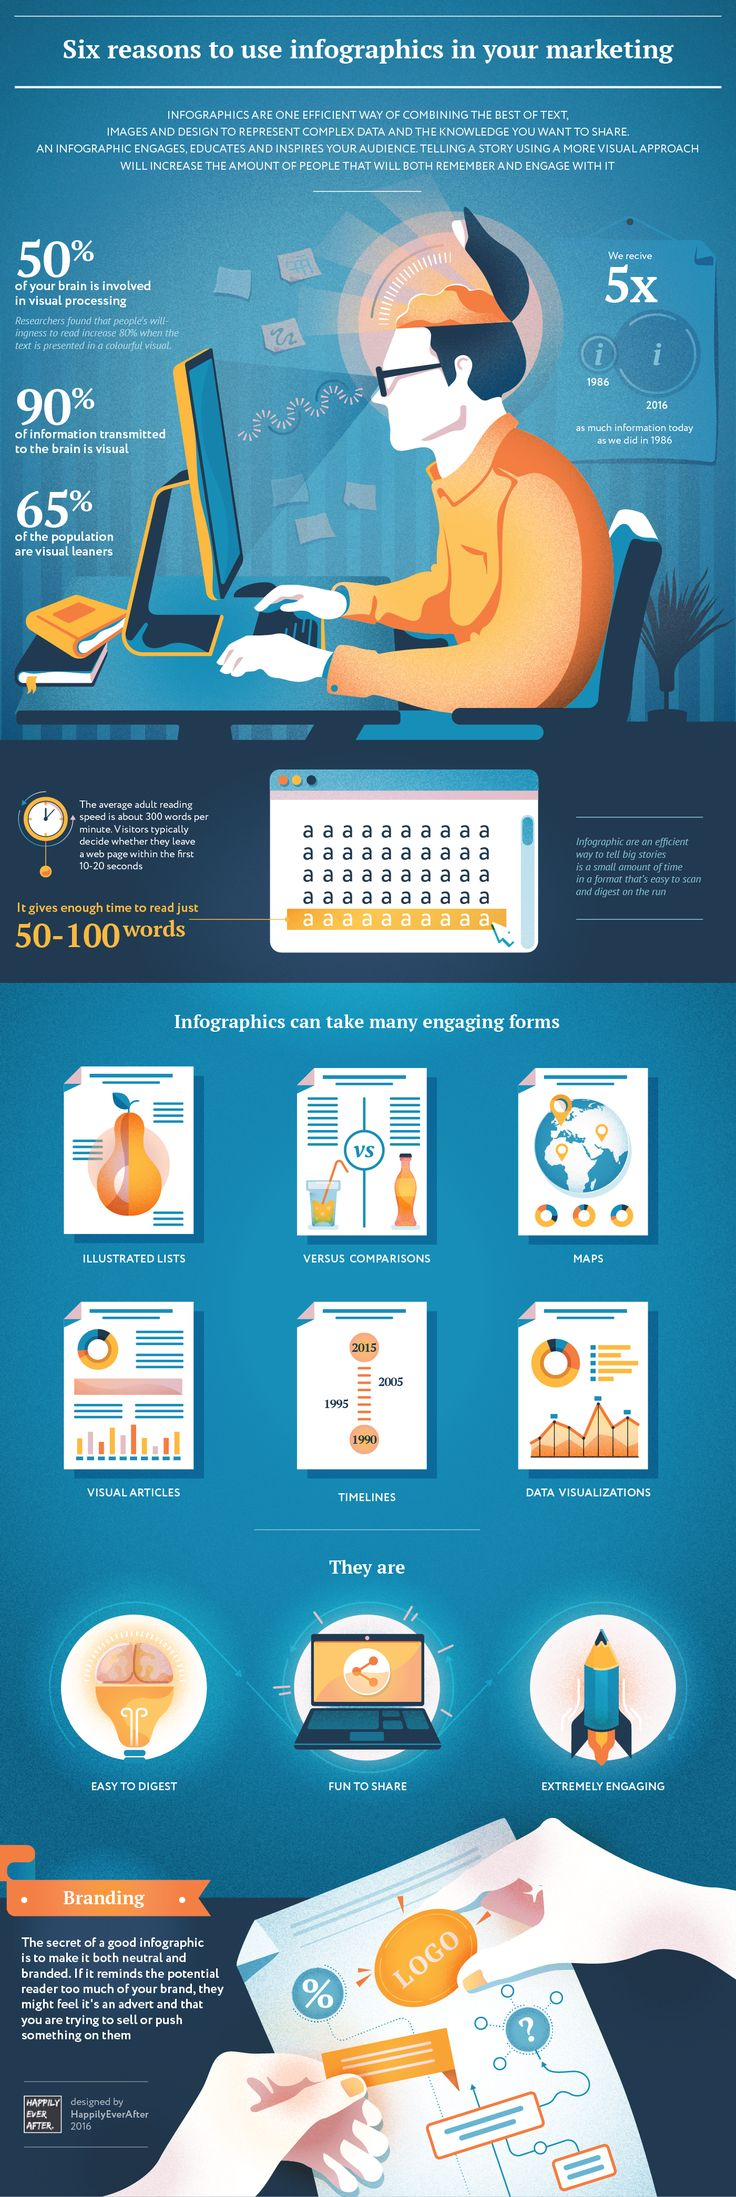 530 best Infographics images on Pinterest | Business marketing ...